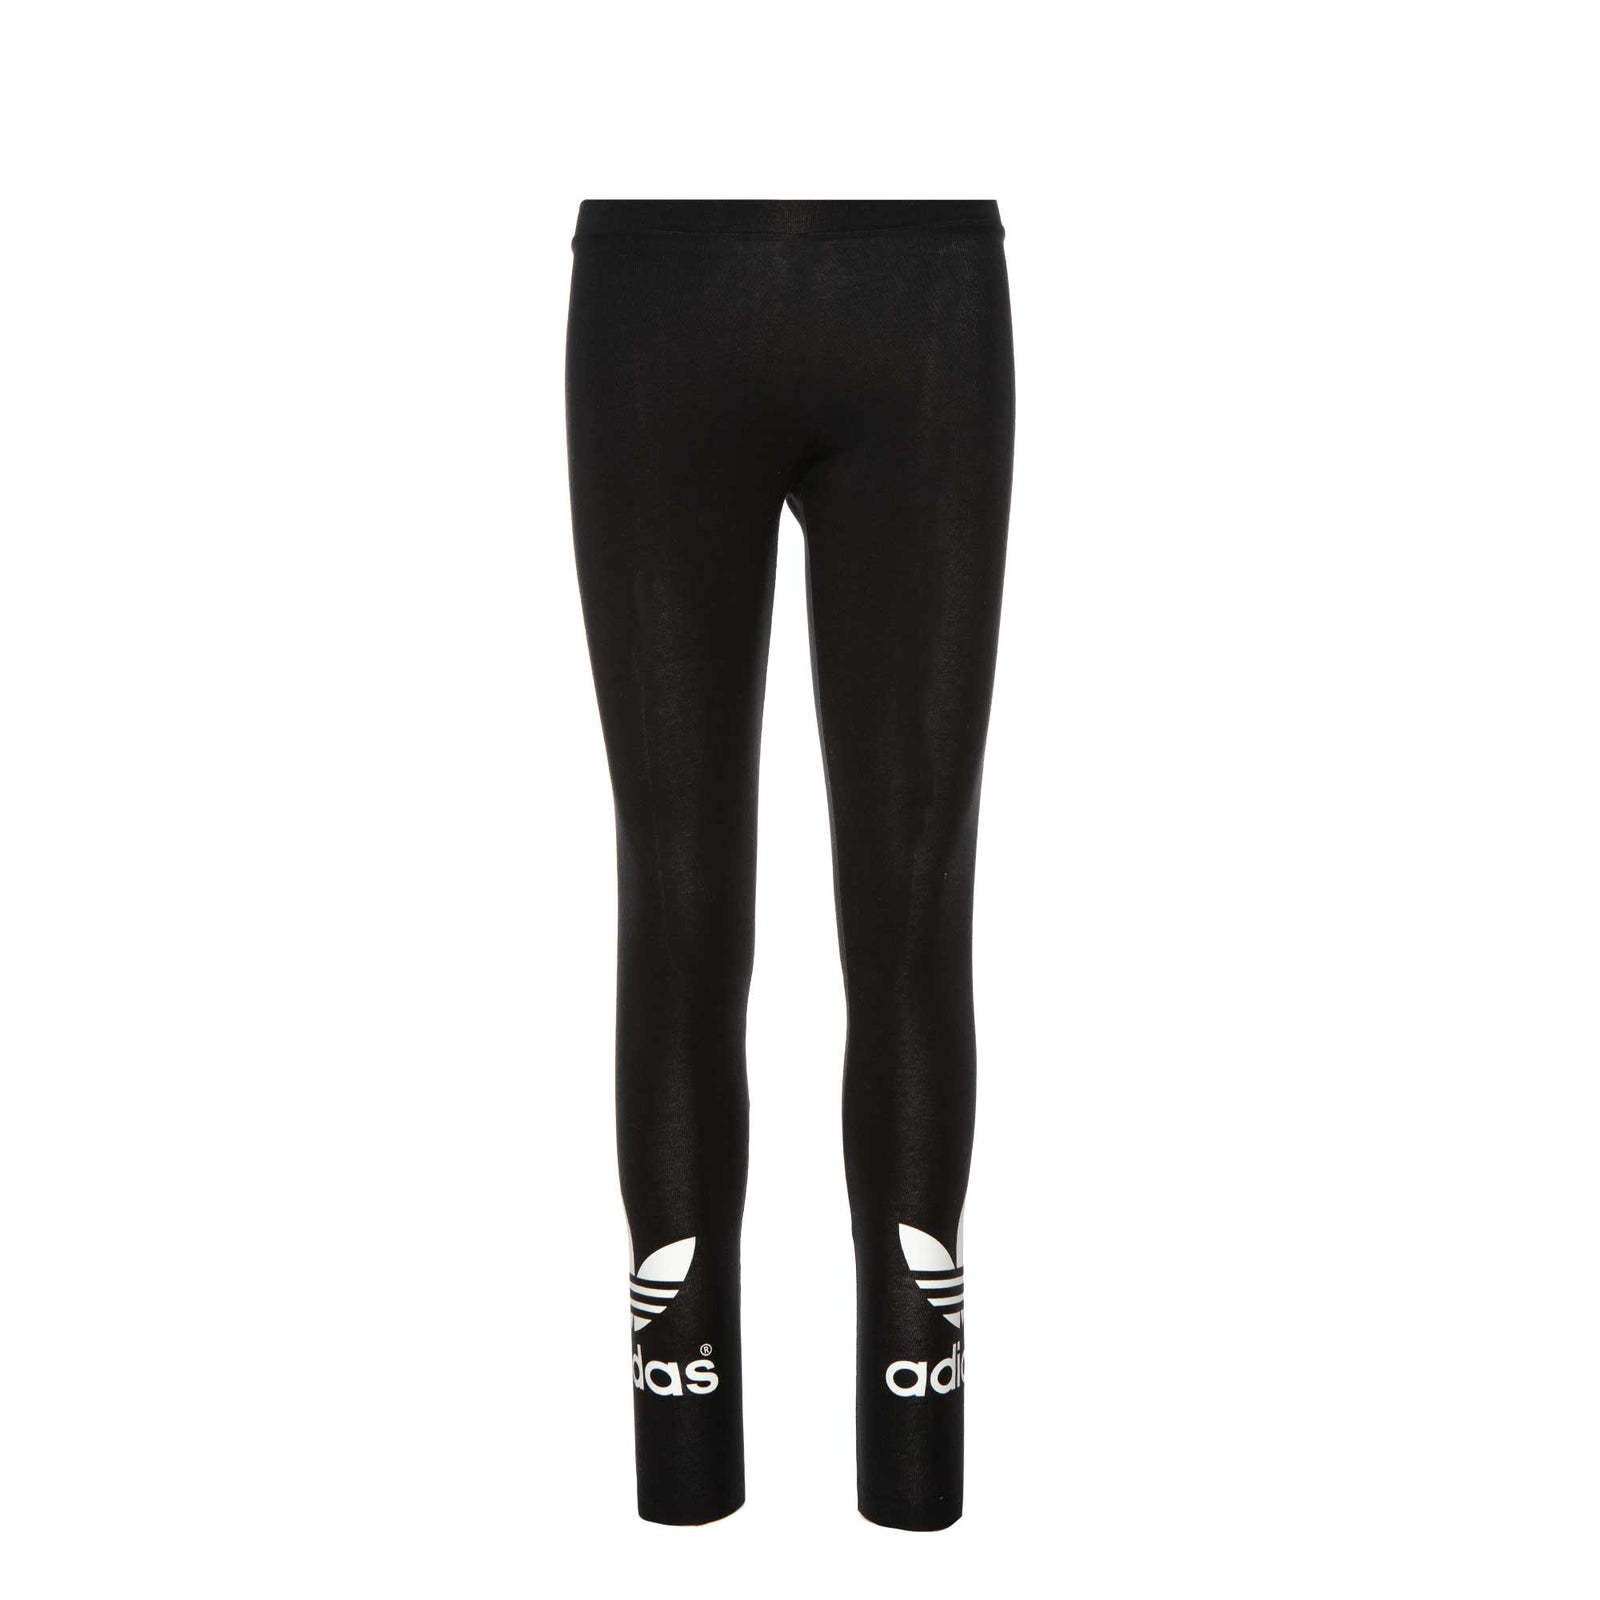 Adidas Trefoil Leggings